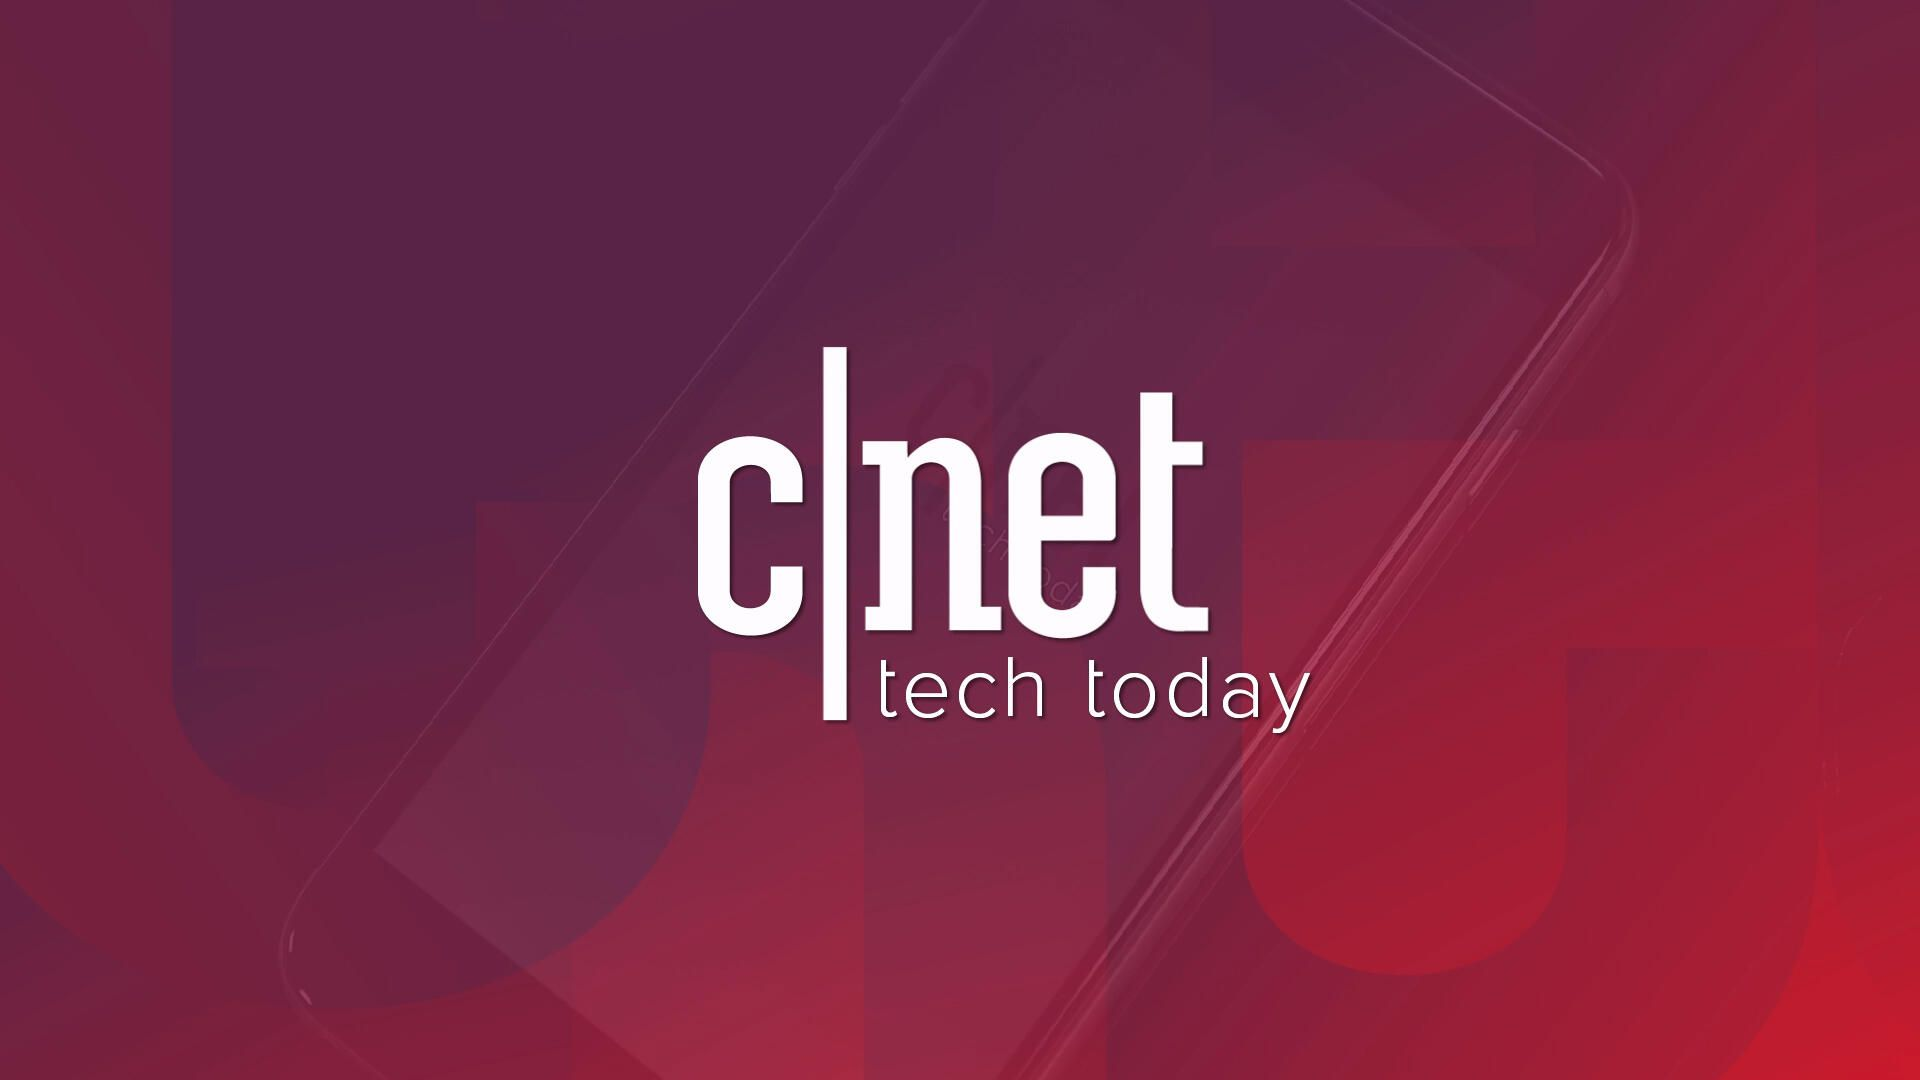 , Apple's abandoned encryption plan, Google changes search results – Video – Source CNET Tech, iBSC Technologies - learning management services, LMS, Wordpress, CMS, Moodle, IT, Email, Web Hosting, Cloud Server,Cloud Computing